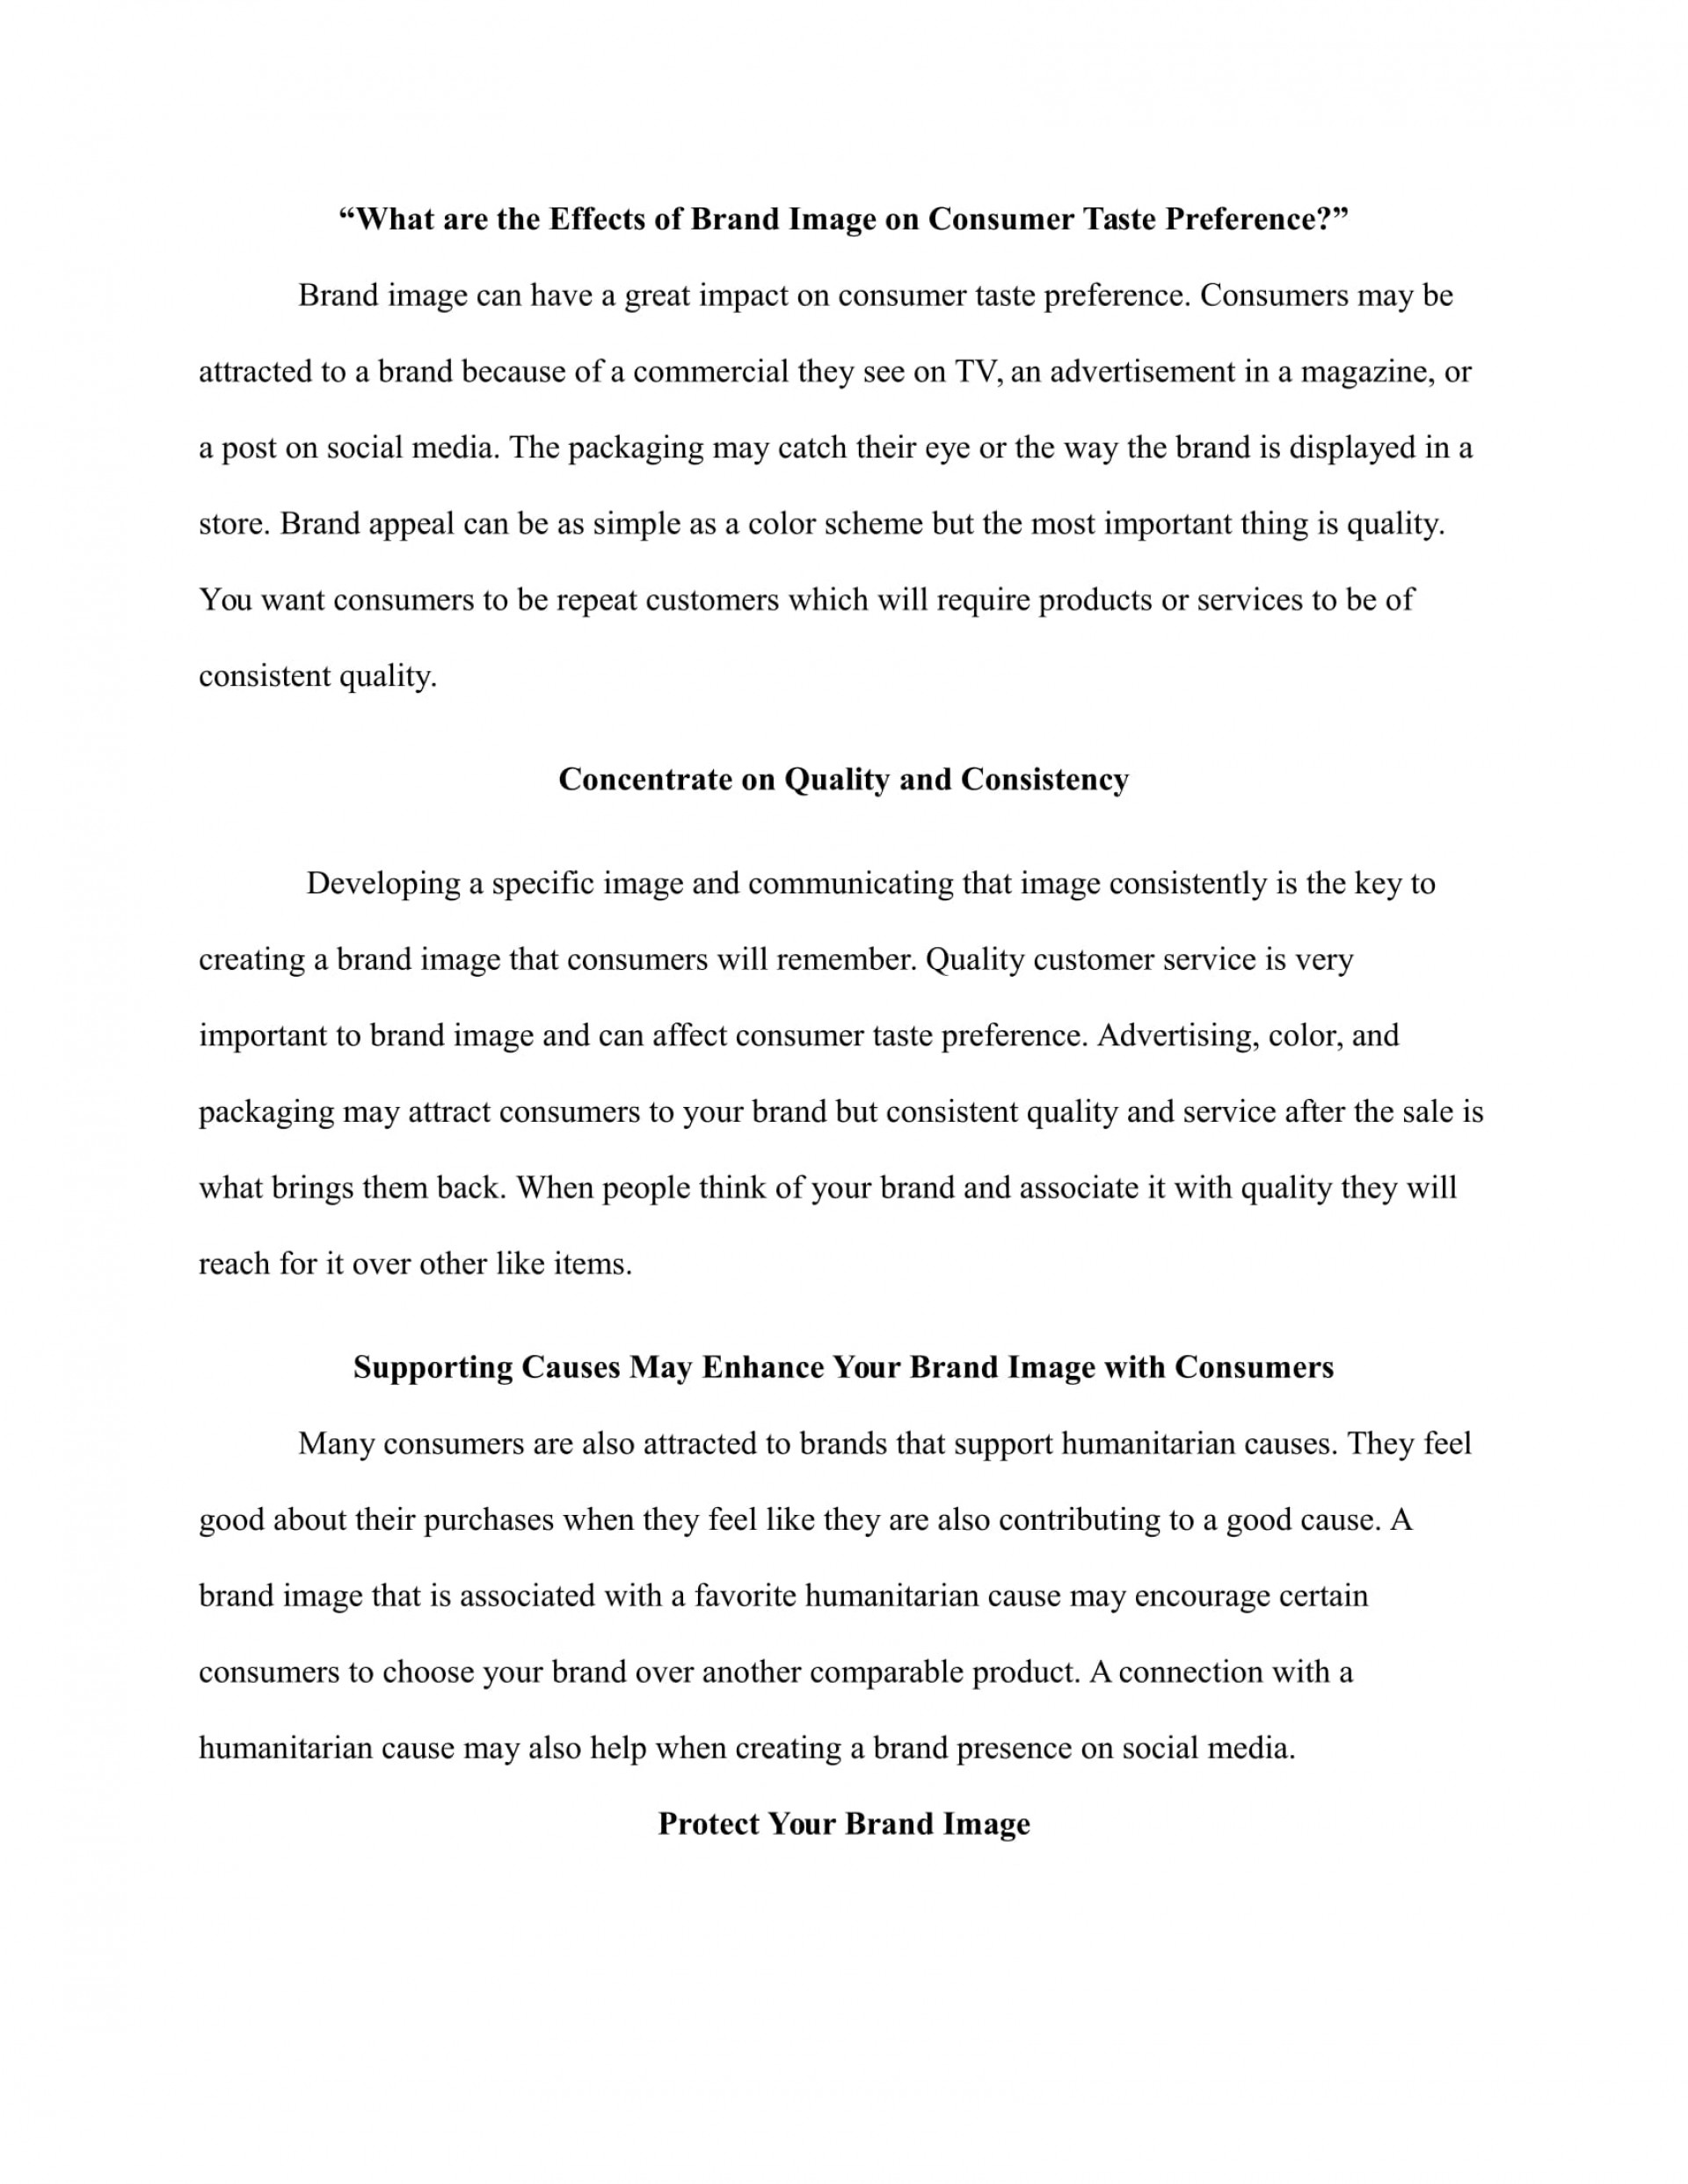 014 Expository Essay Sample 1 Impressive Example Examples For Scholarship Application Formal In Literature With Thesis Statement And Topic Sentence 1920